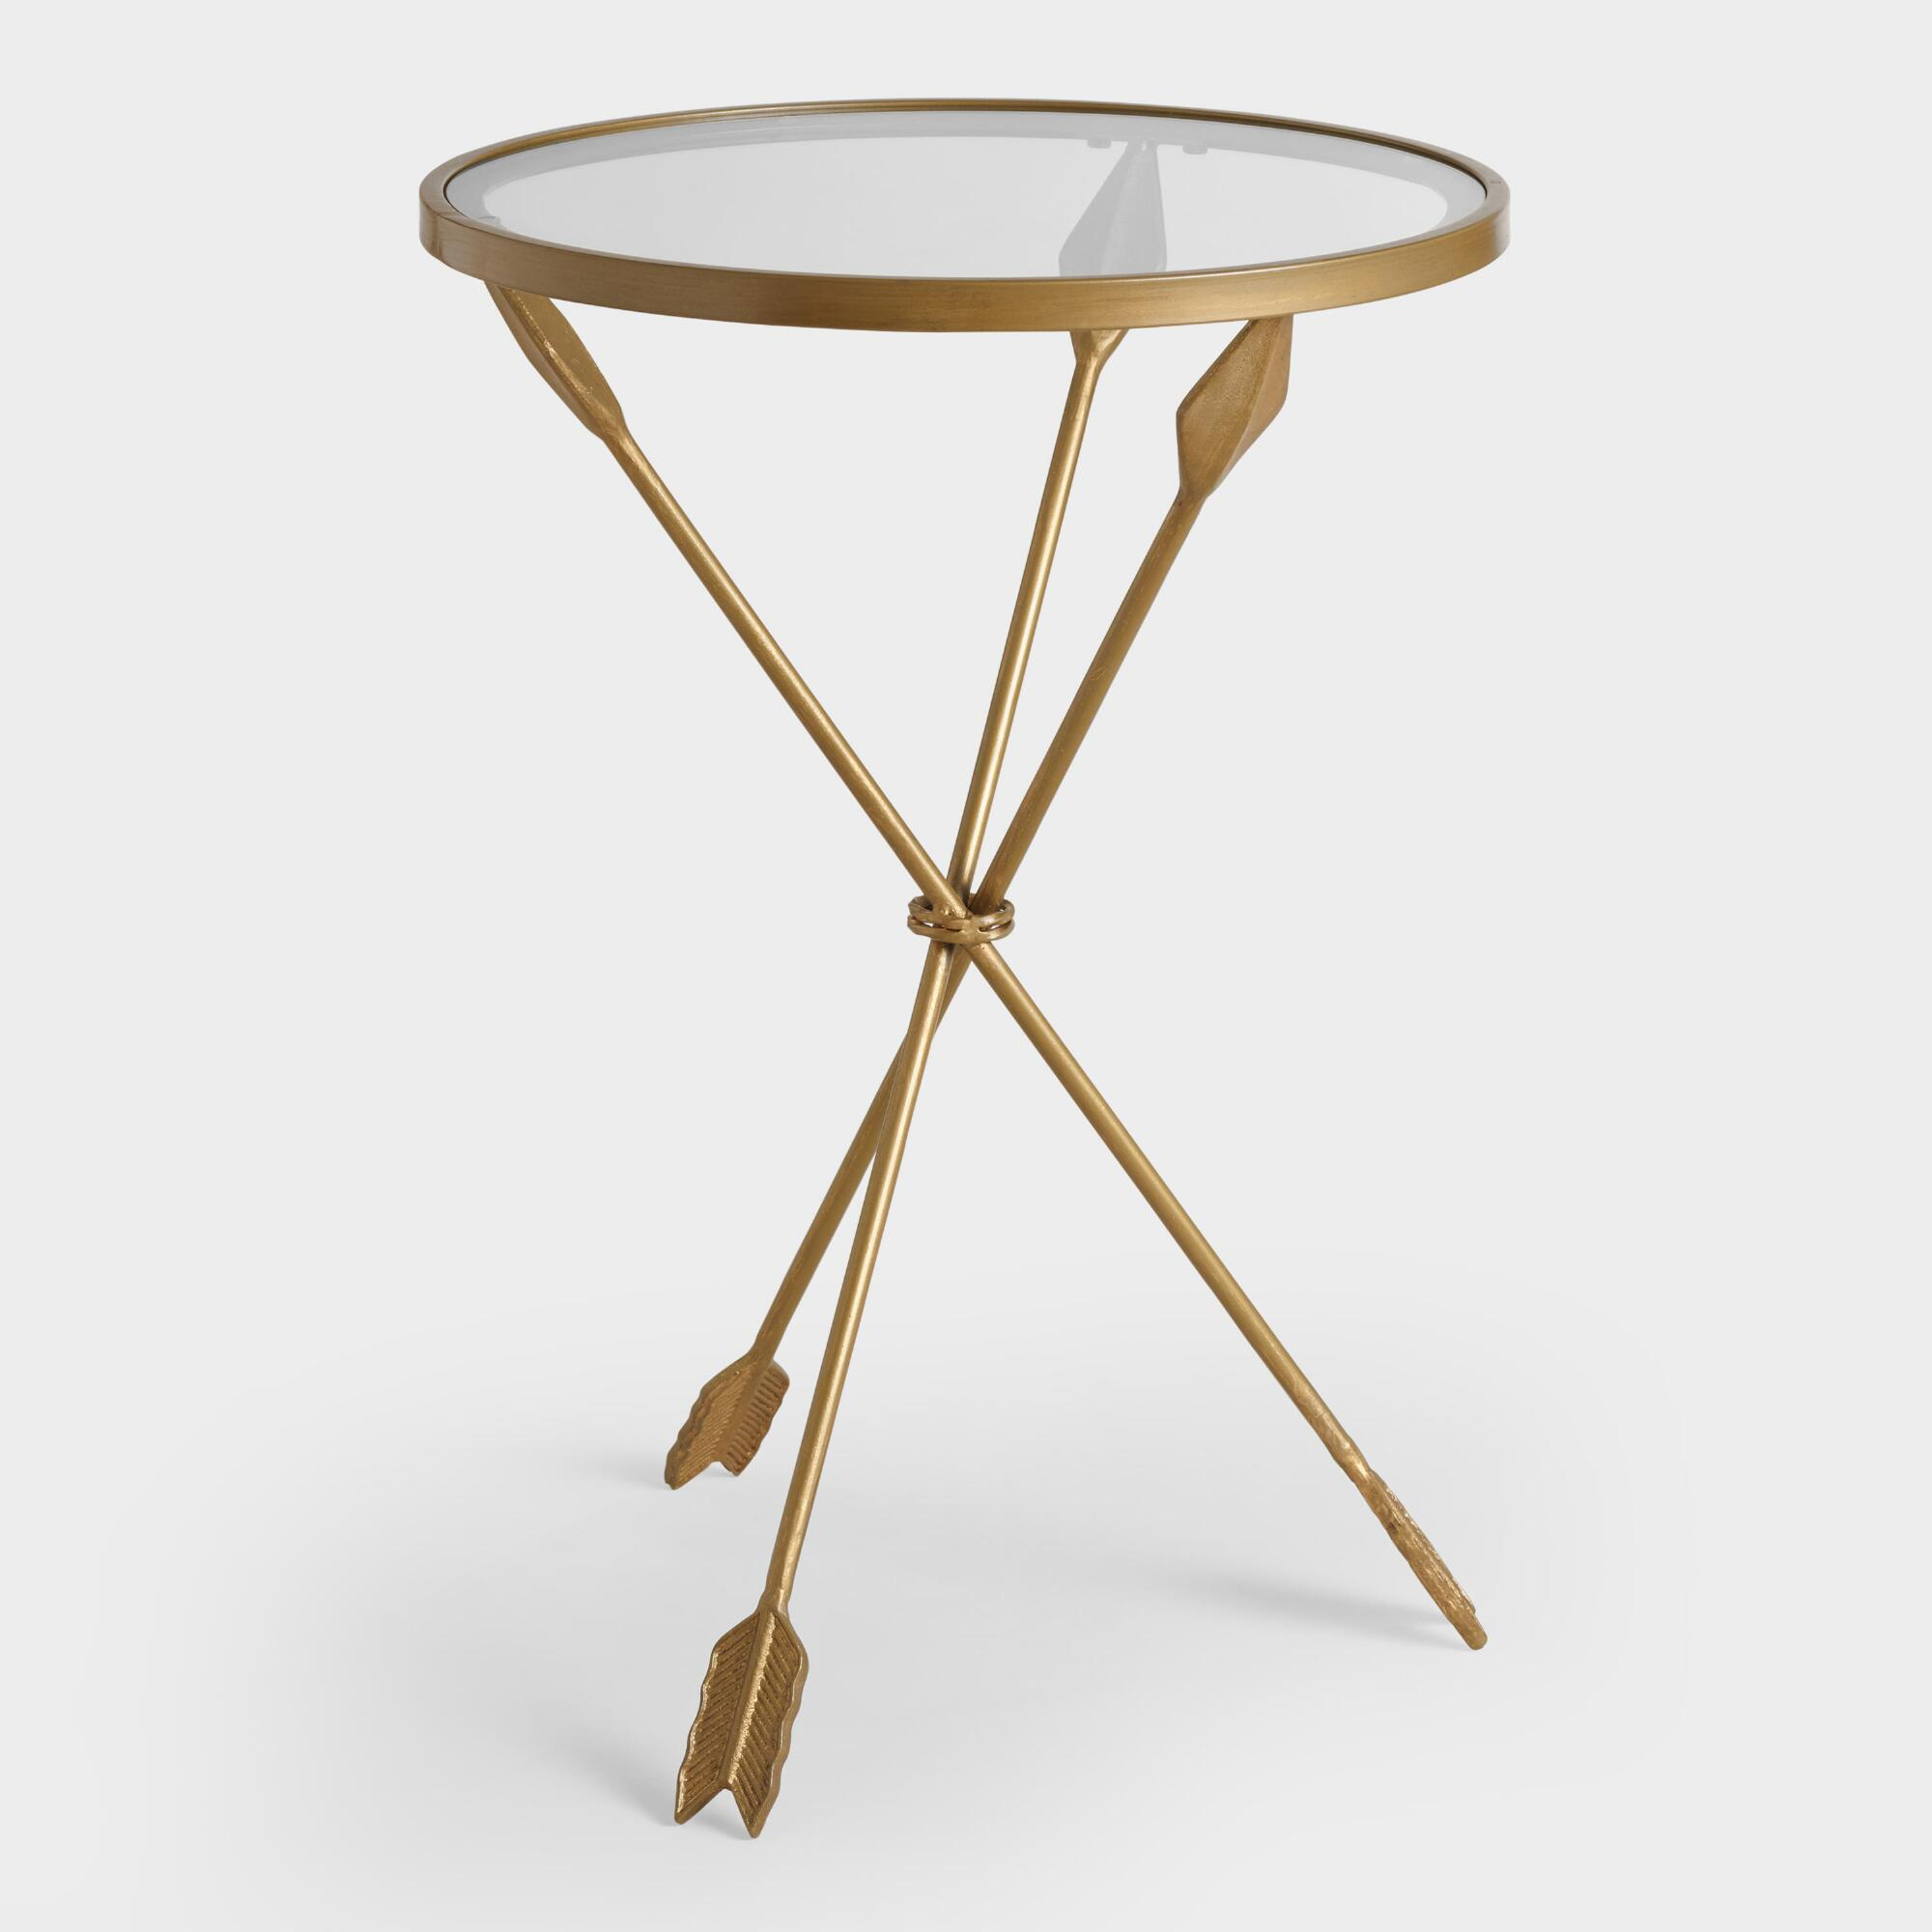 accent tables excellent gold and glass table wood coffee phenomenal side drum top end small round full size made from tree trunk oval sets replacement dining chairs rustic white